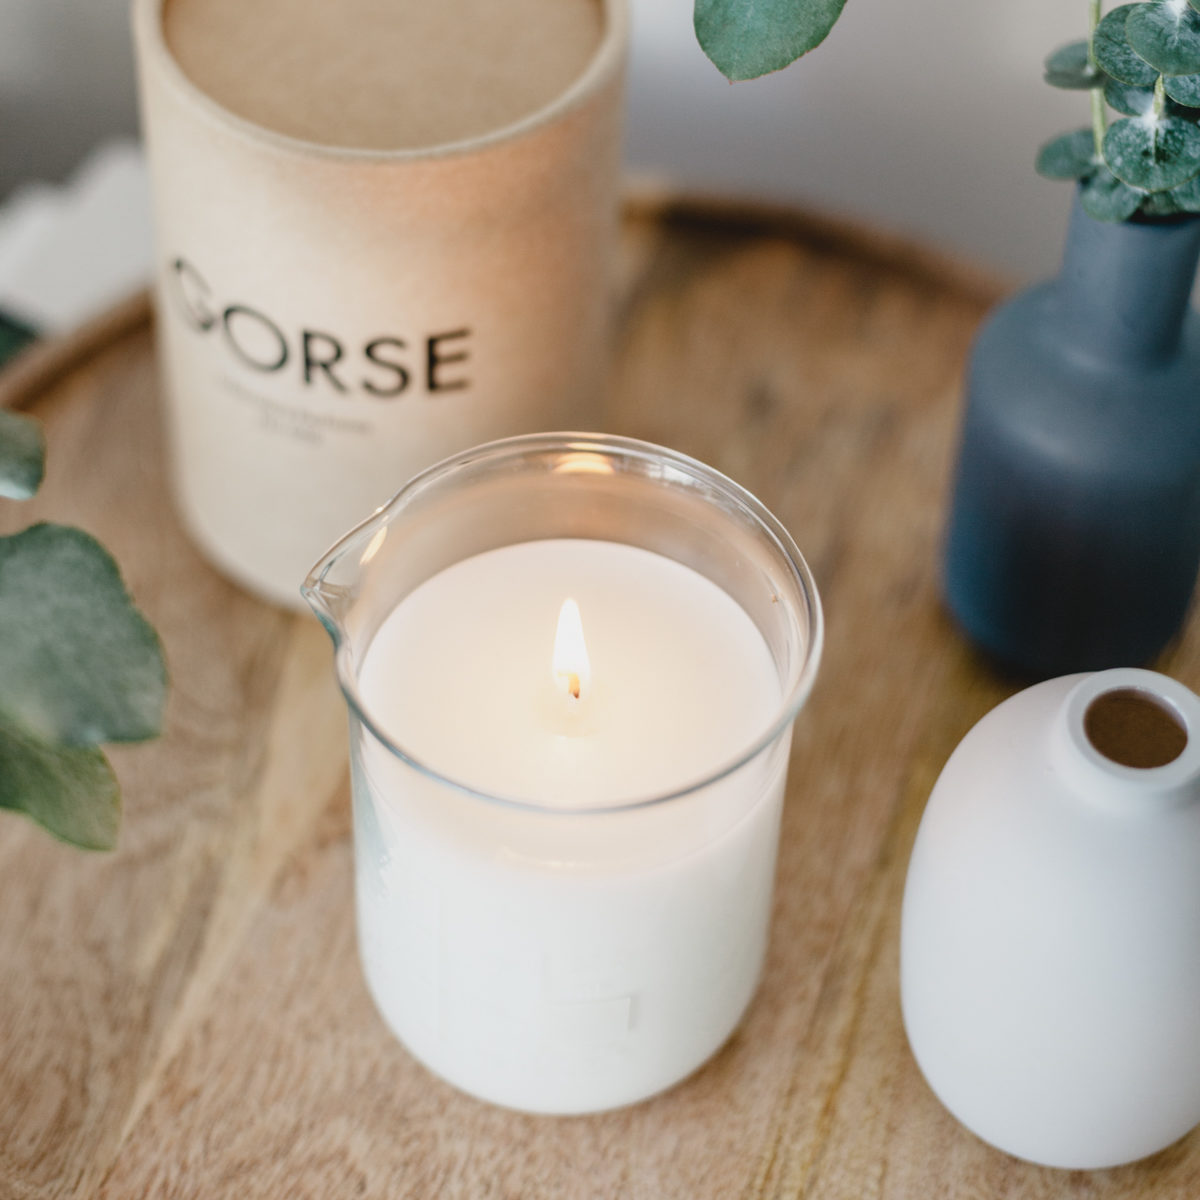 Gorse-Candle-by-Laboratory-Perfumes-1-e1552066248179.jpg